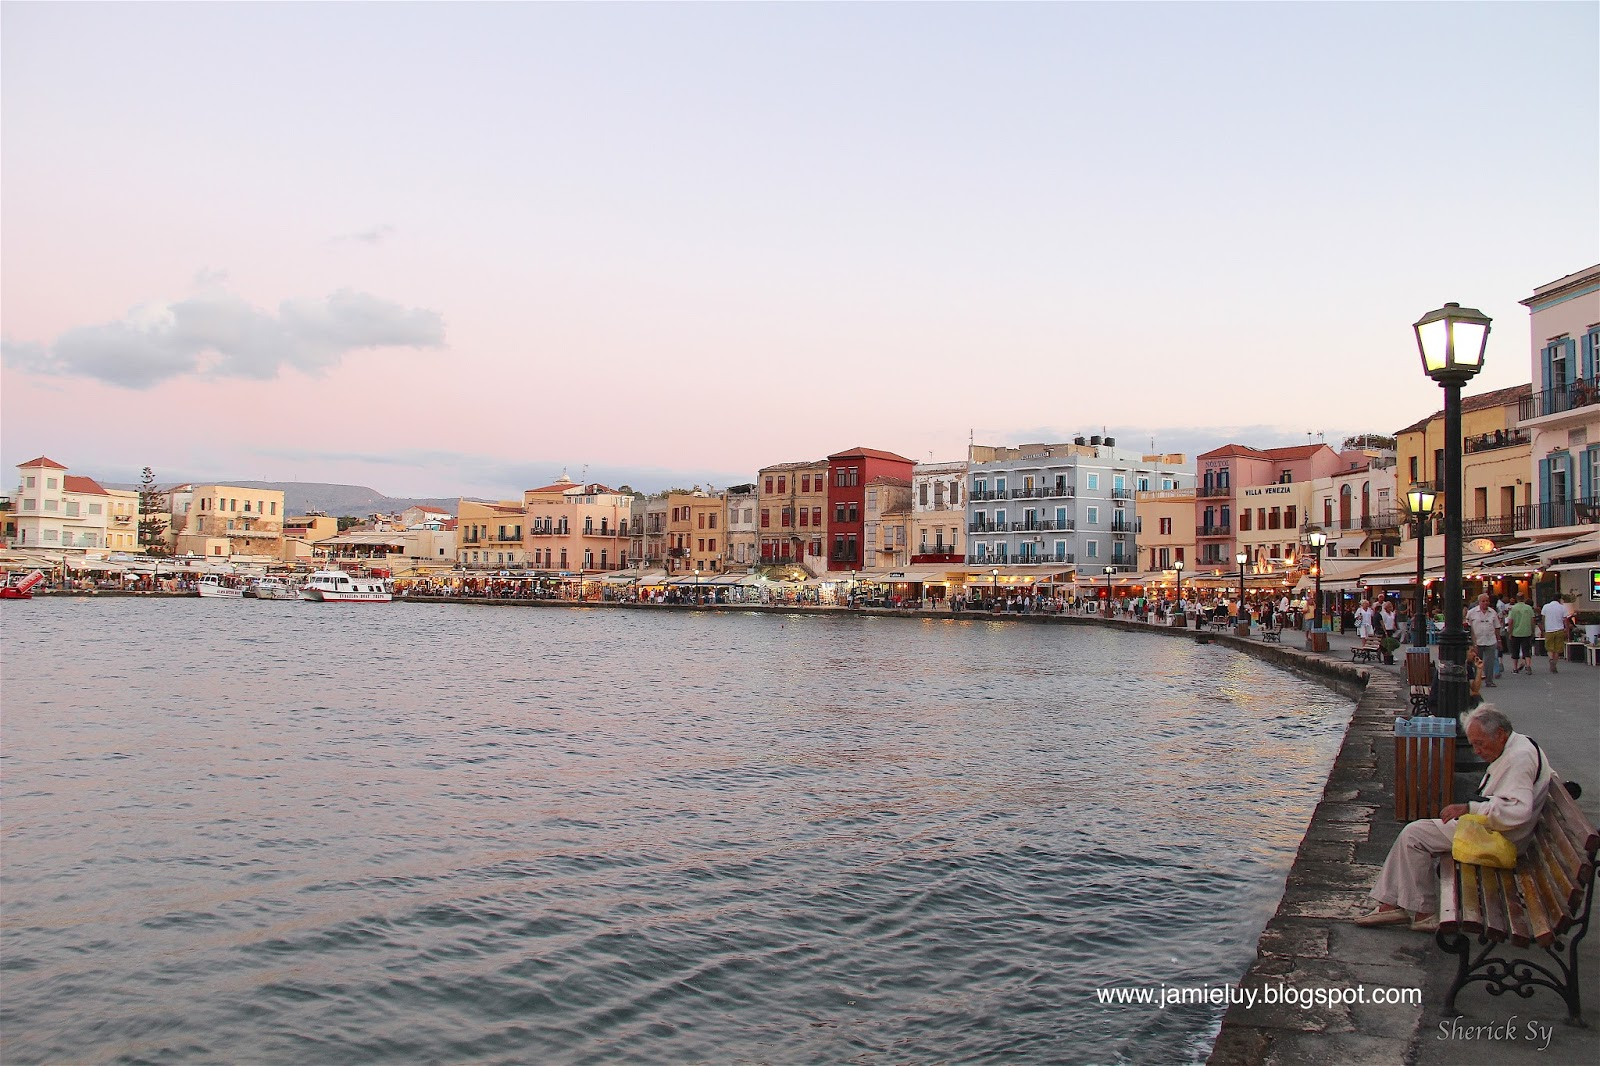 chania crete dating And chania is also known for having some of the best restaurants on crete chania is the  our pick of the best places to stay in chania are a  dating from 1650 .